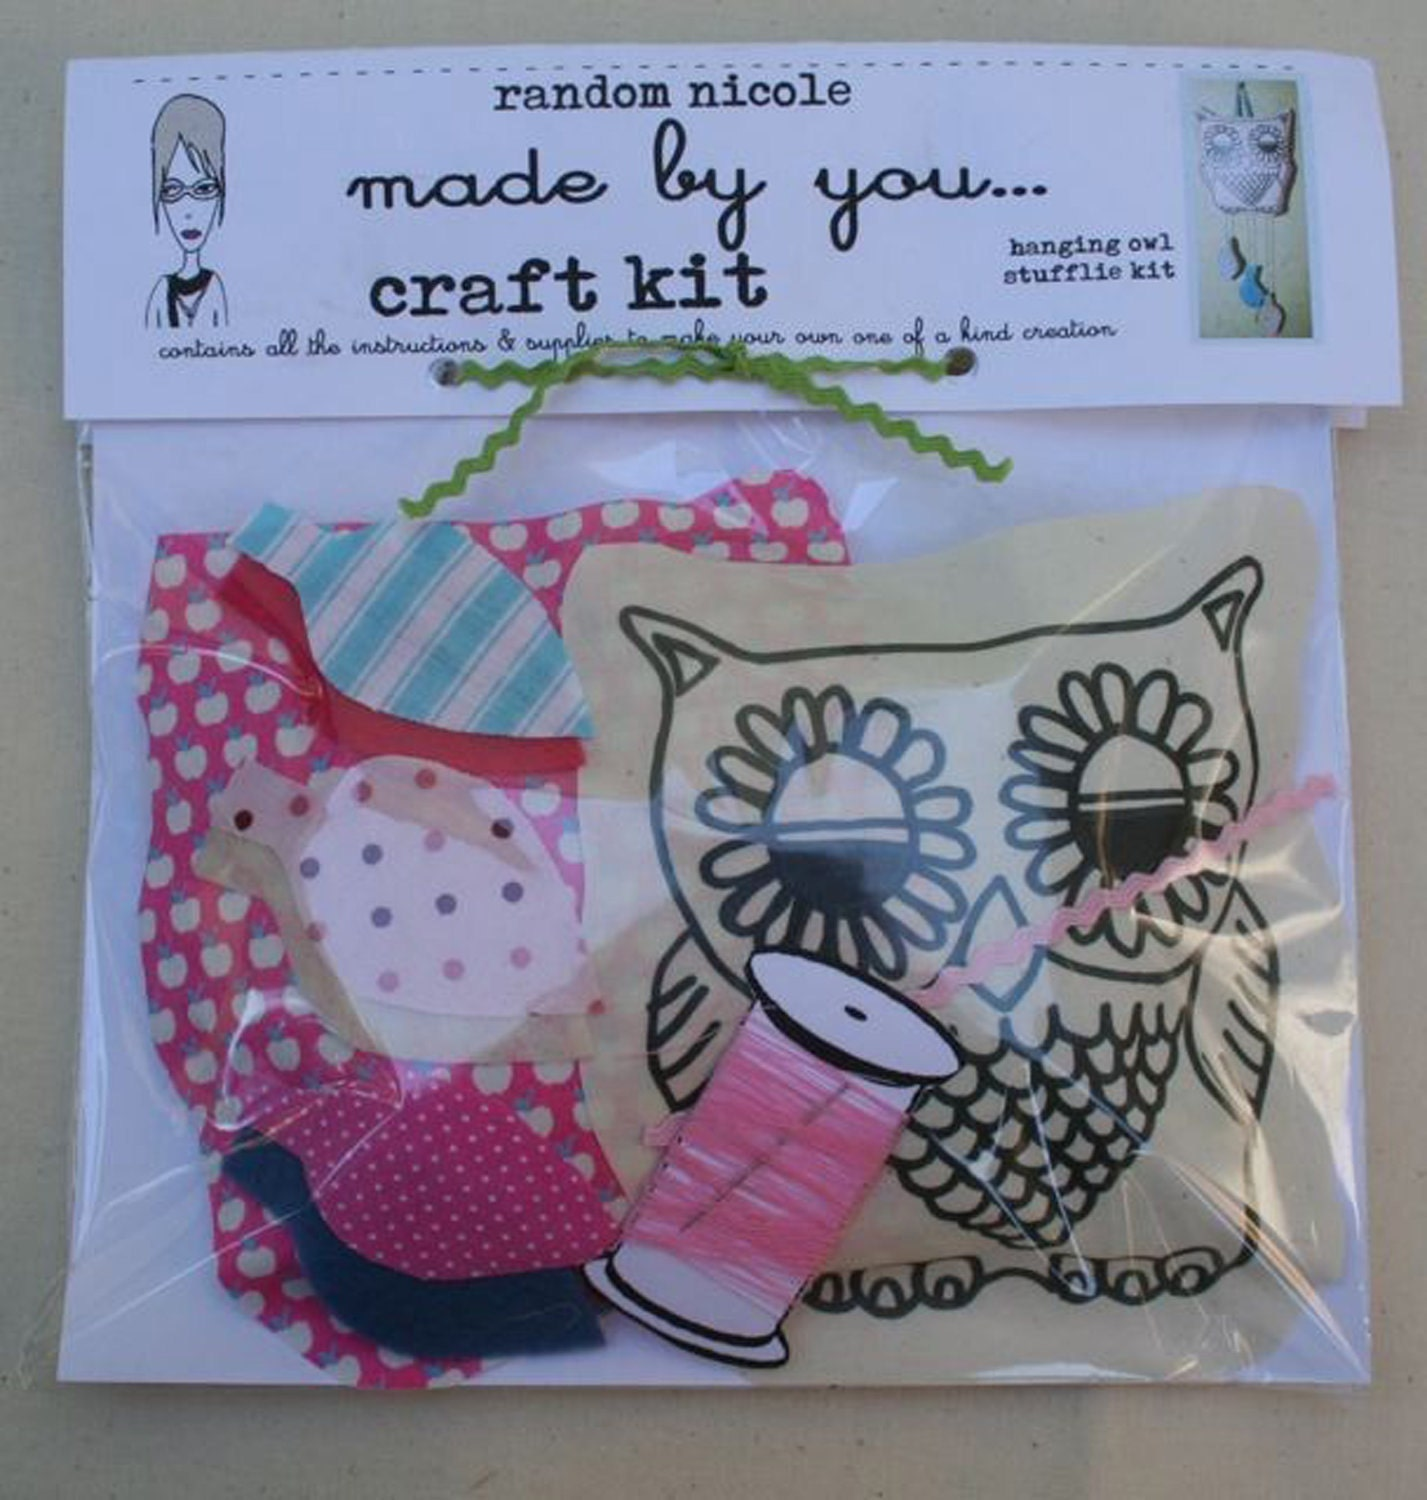 craft kits, crafts for kids, craft gifts for kids, craft gifts, unique crafts, eco-friendly crafts